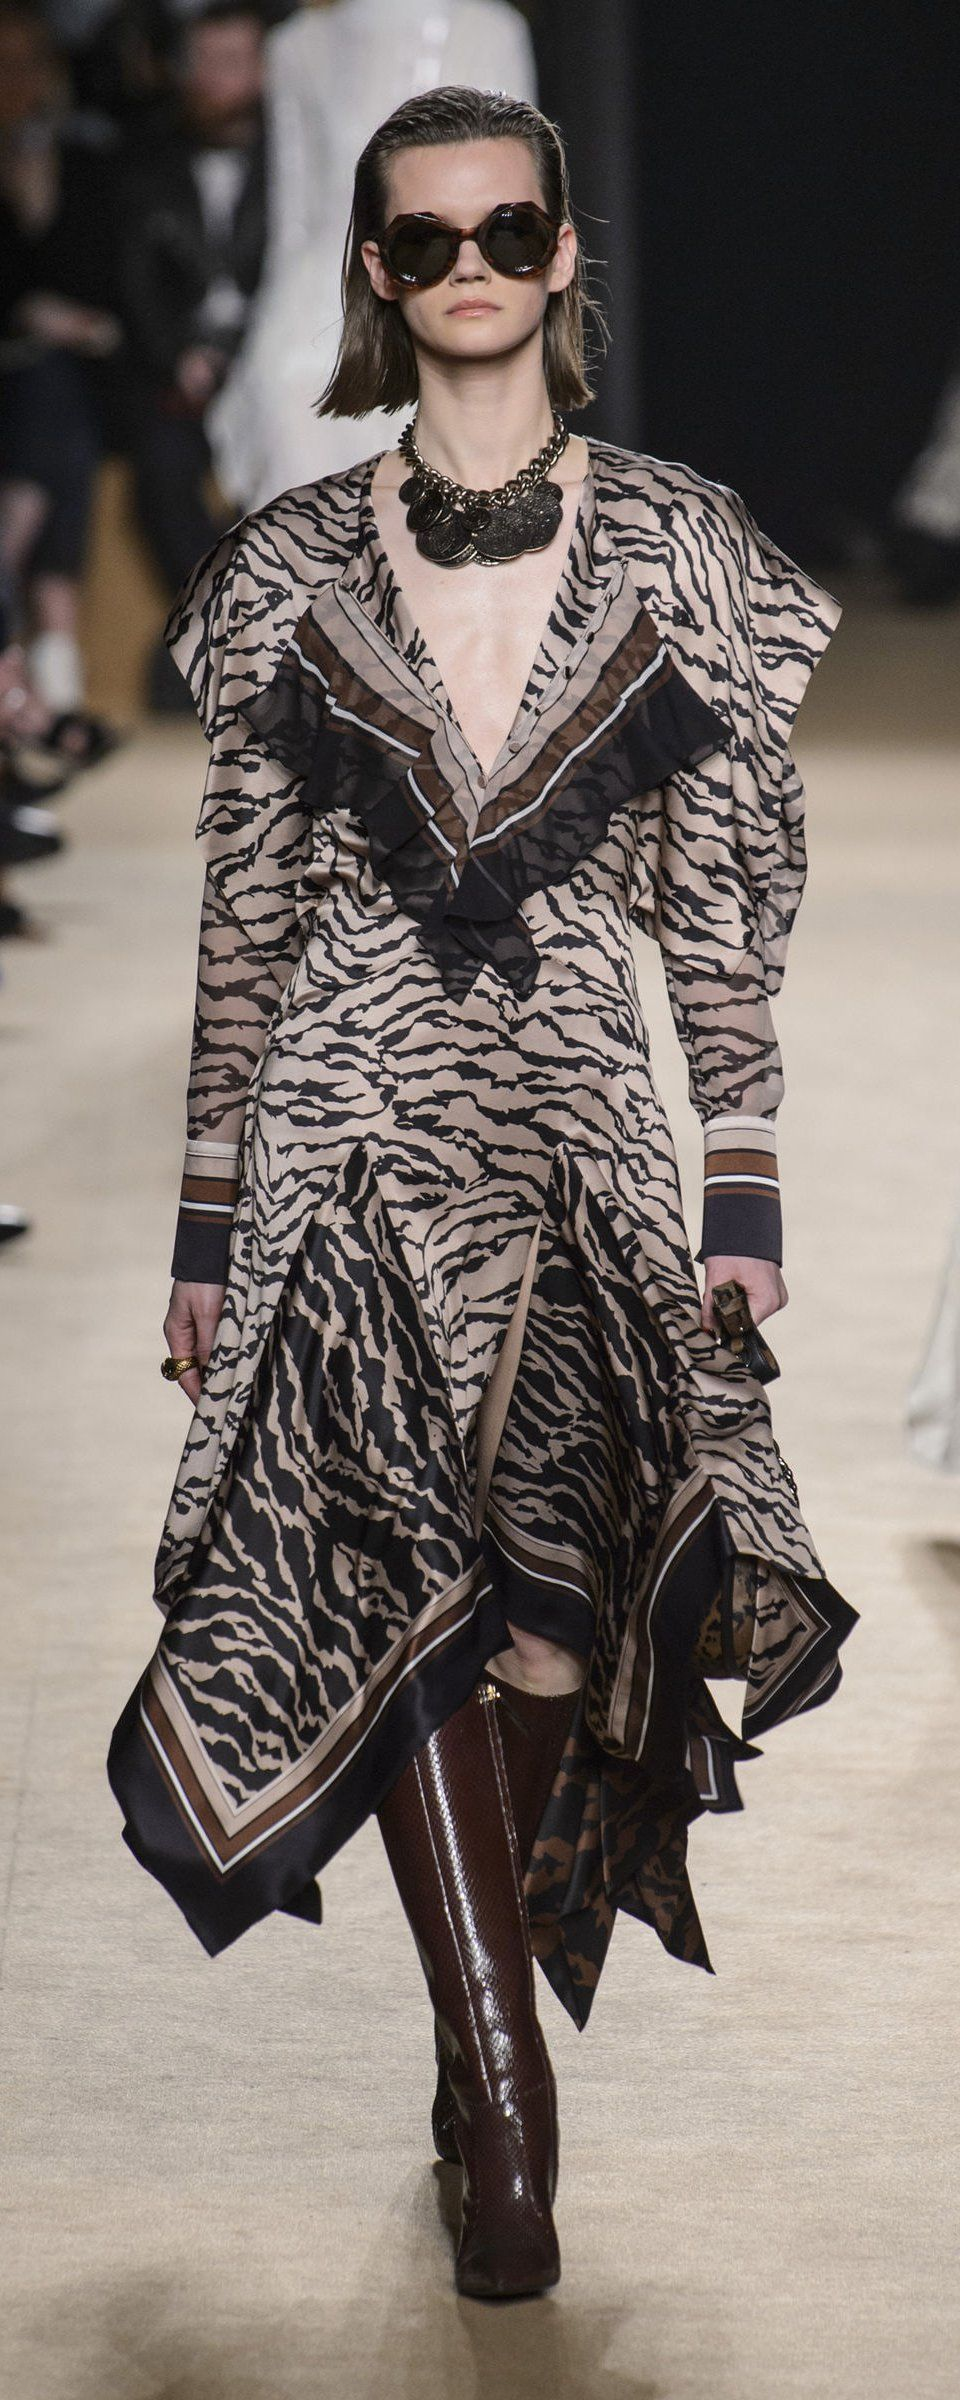 Roberto Cavalli Fall 2019 Collection at MFW